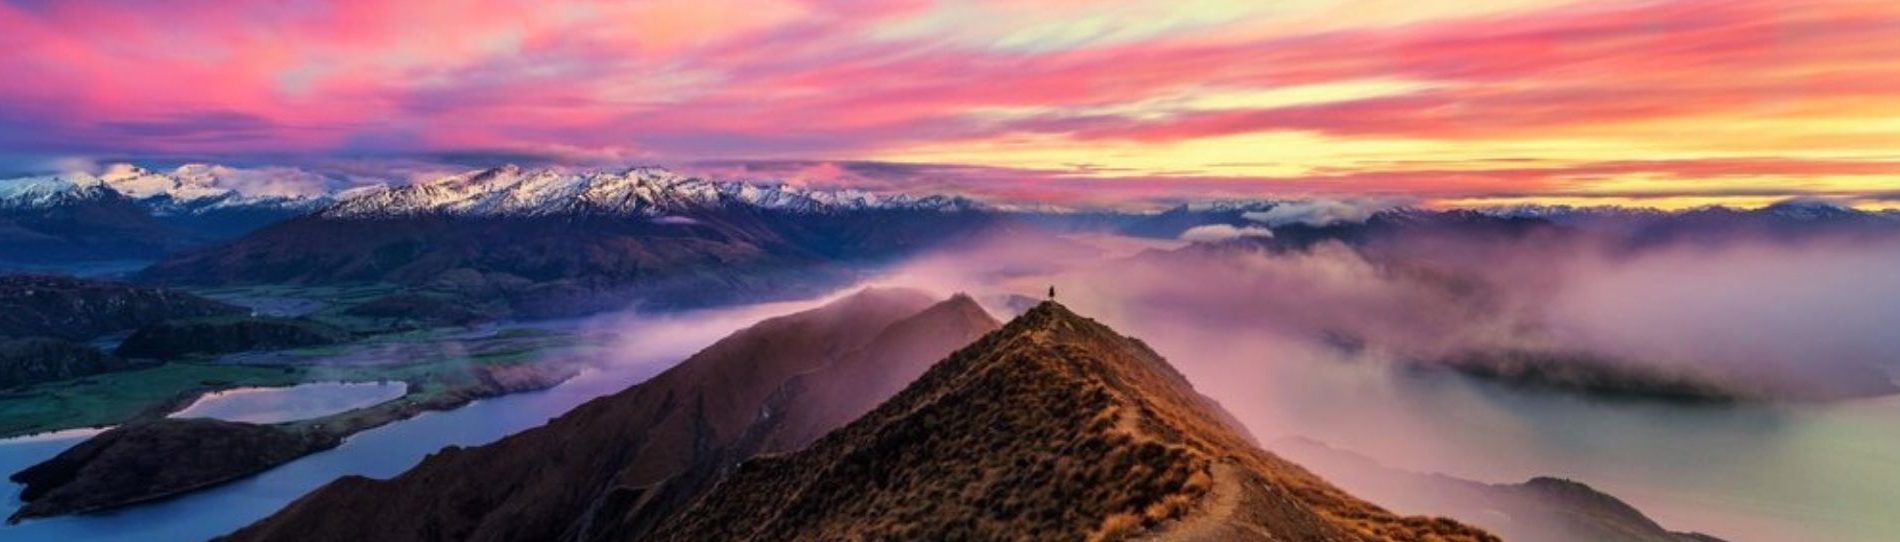 attractions and things to do in wanaka wicked bucks